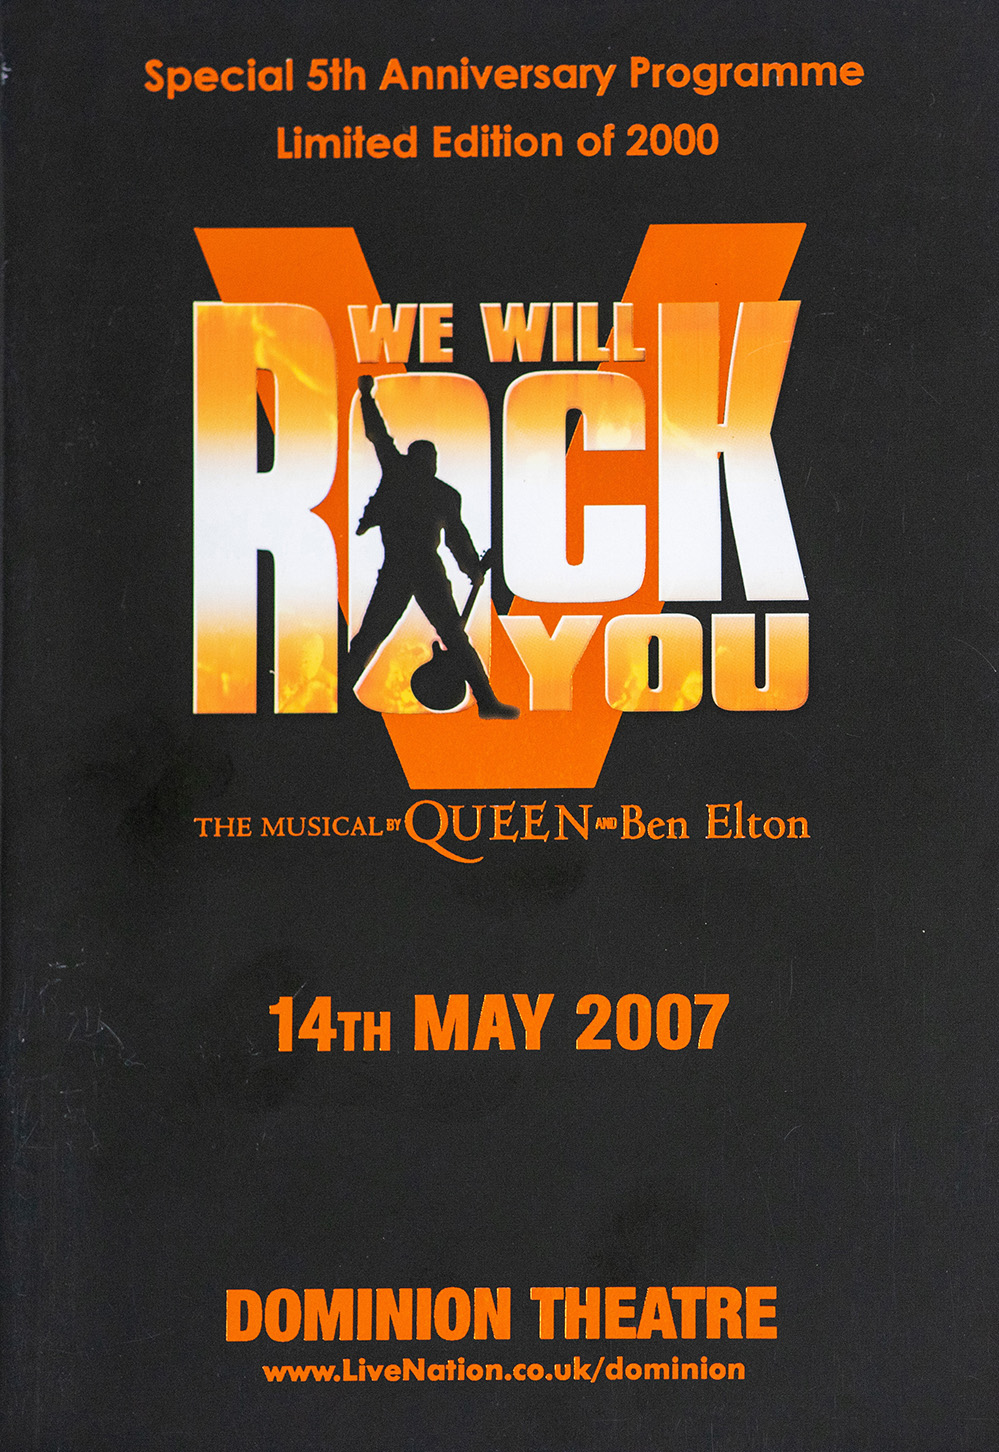 Brian + Roger - London 14.05.2007 (5th anniversary of WWRY)